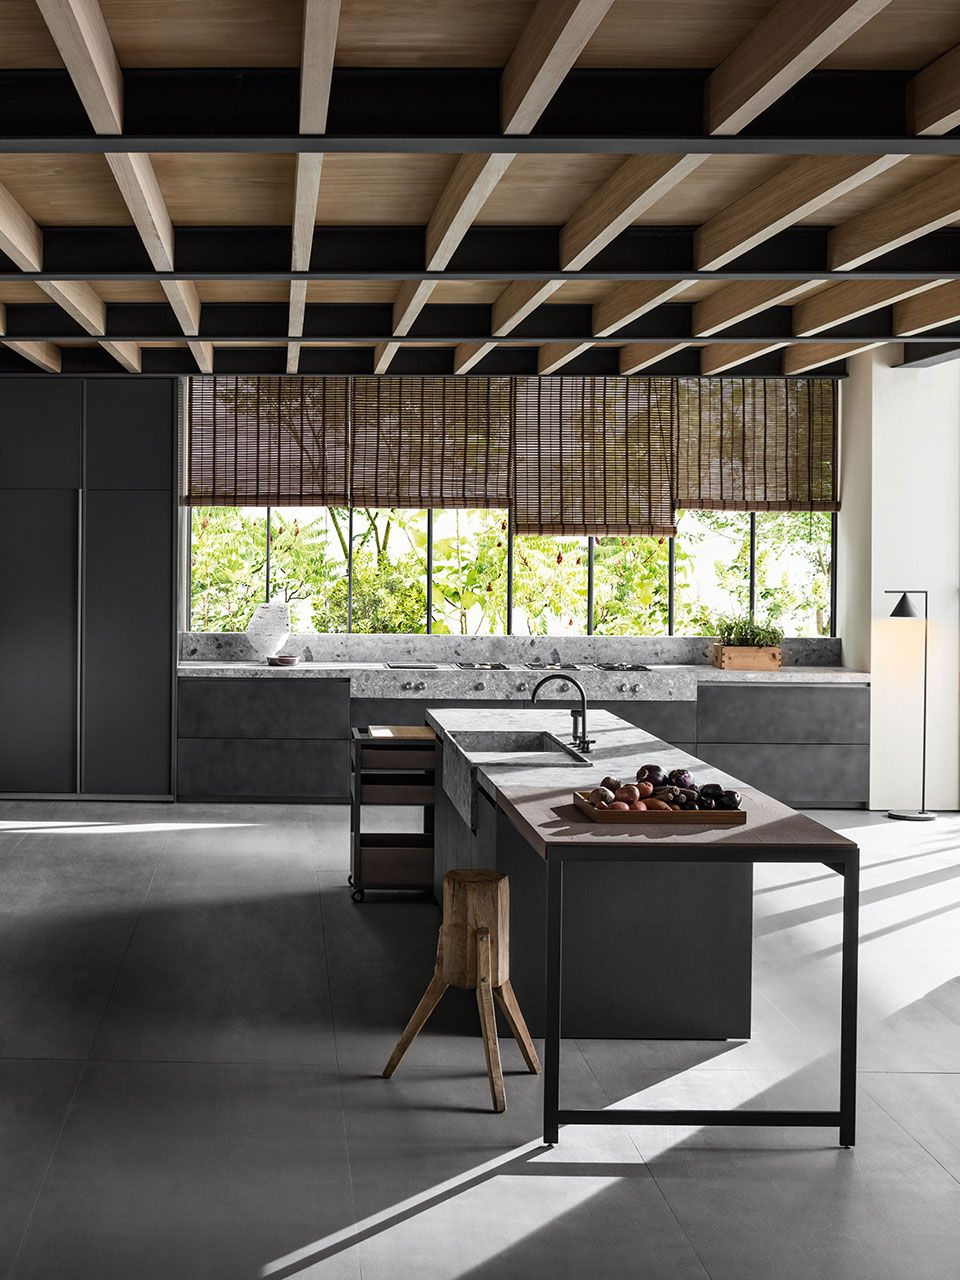 Cucina In Dada Dada Designer Kitchens Made In Italy Ceilings Kitchen Design